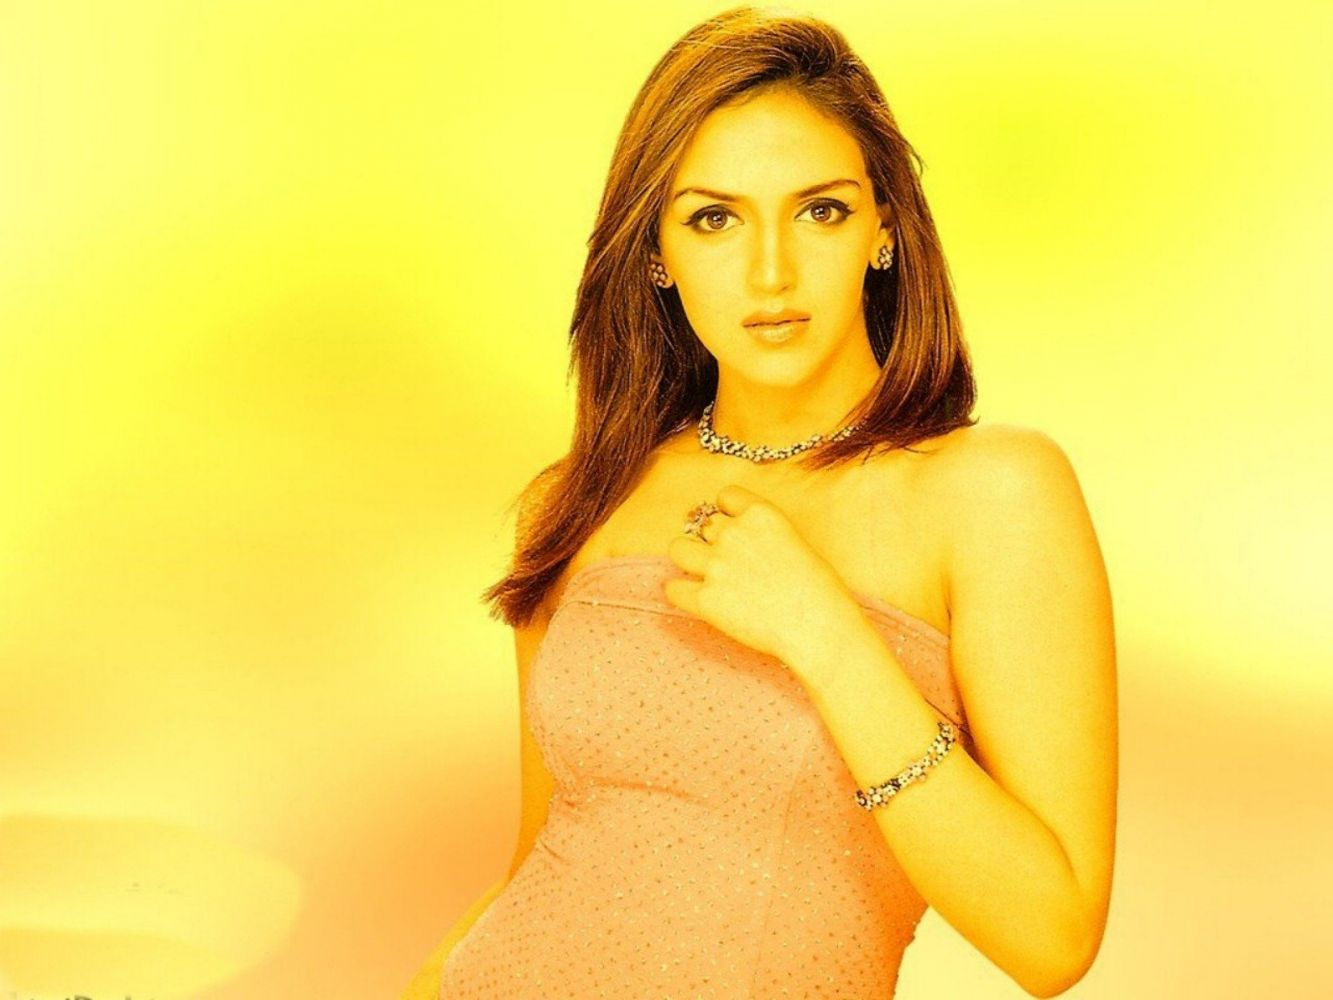 Esha deol bedroom fully nude sex photos gallery male weightlifter photo